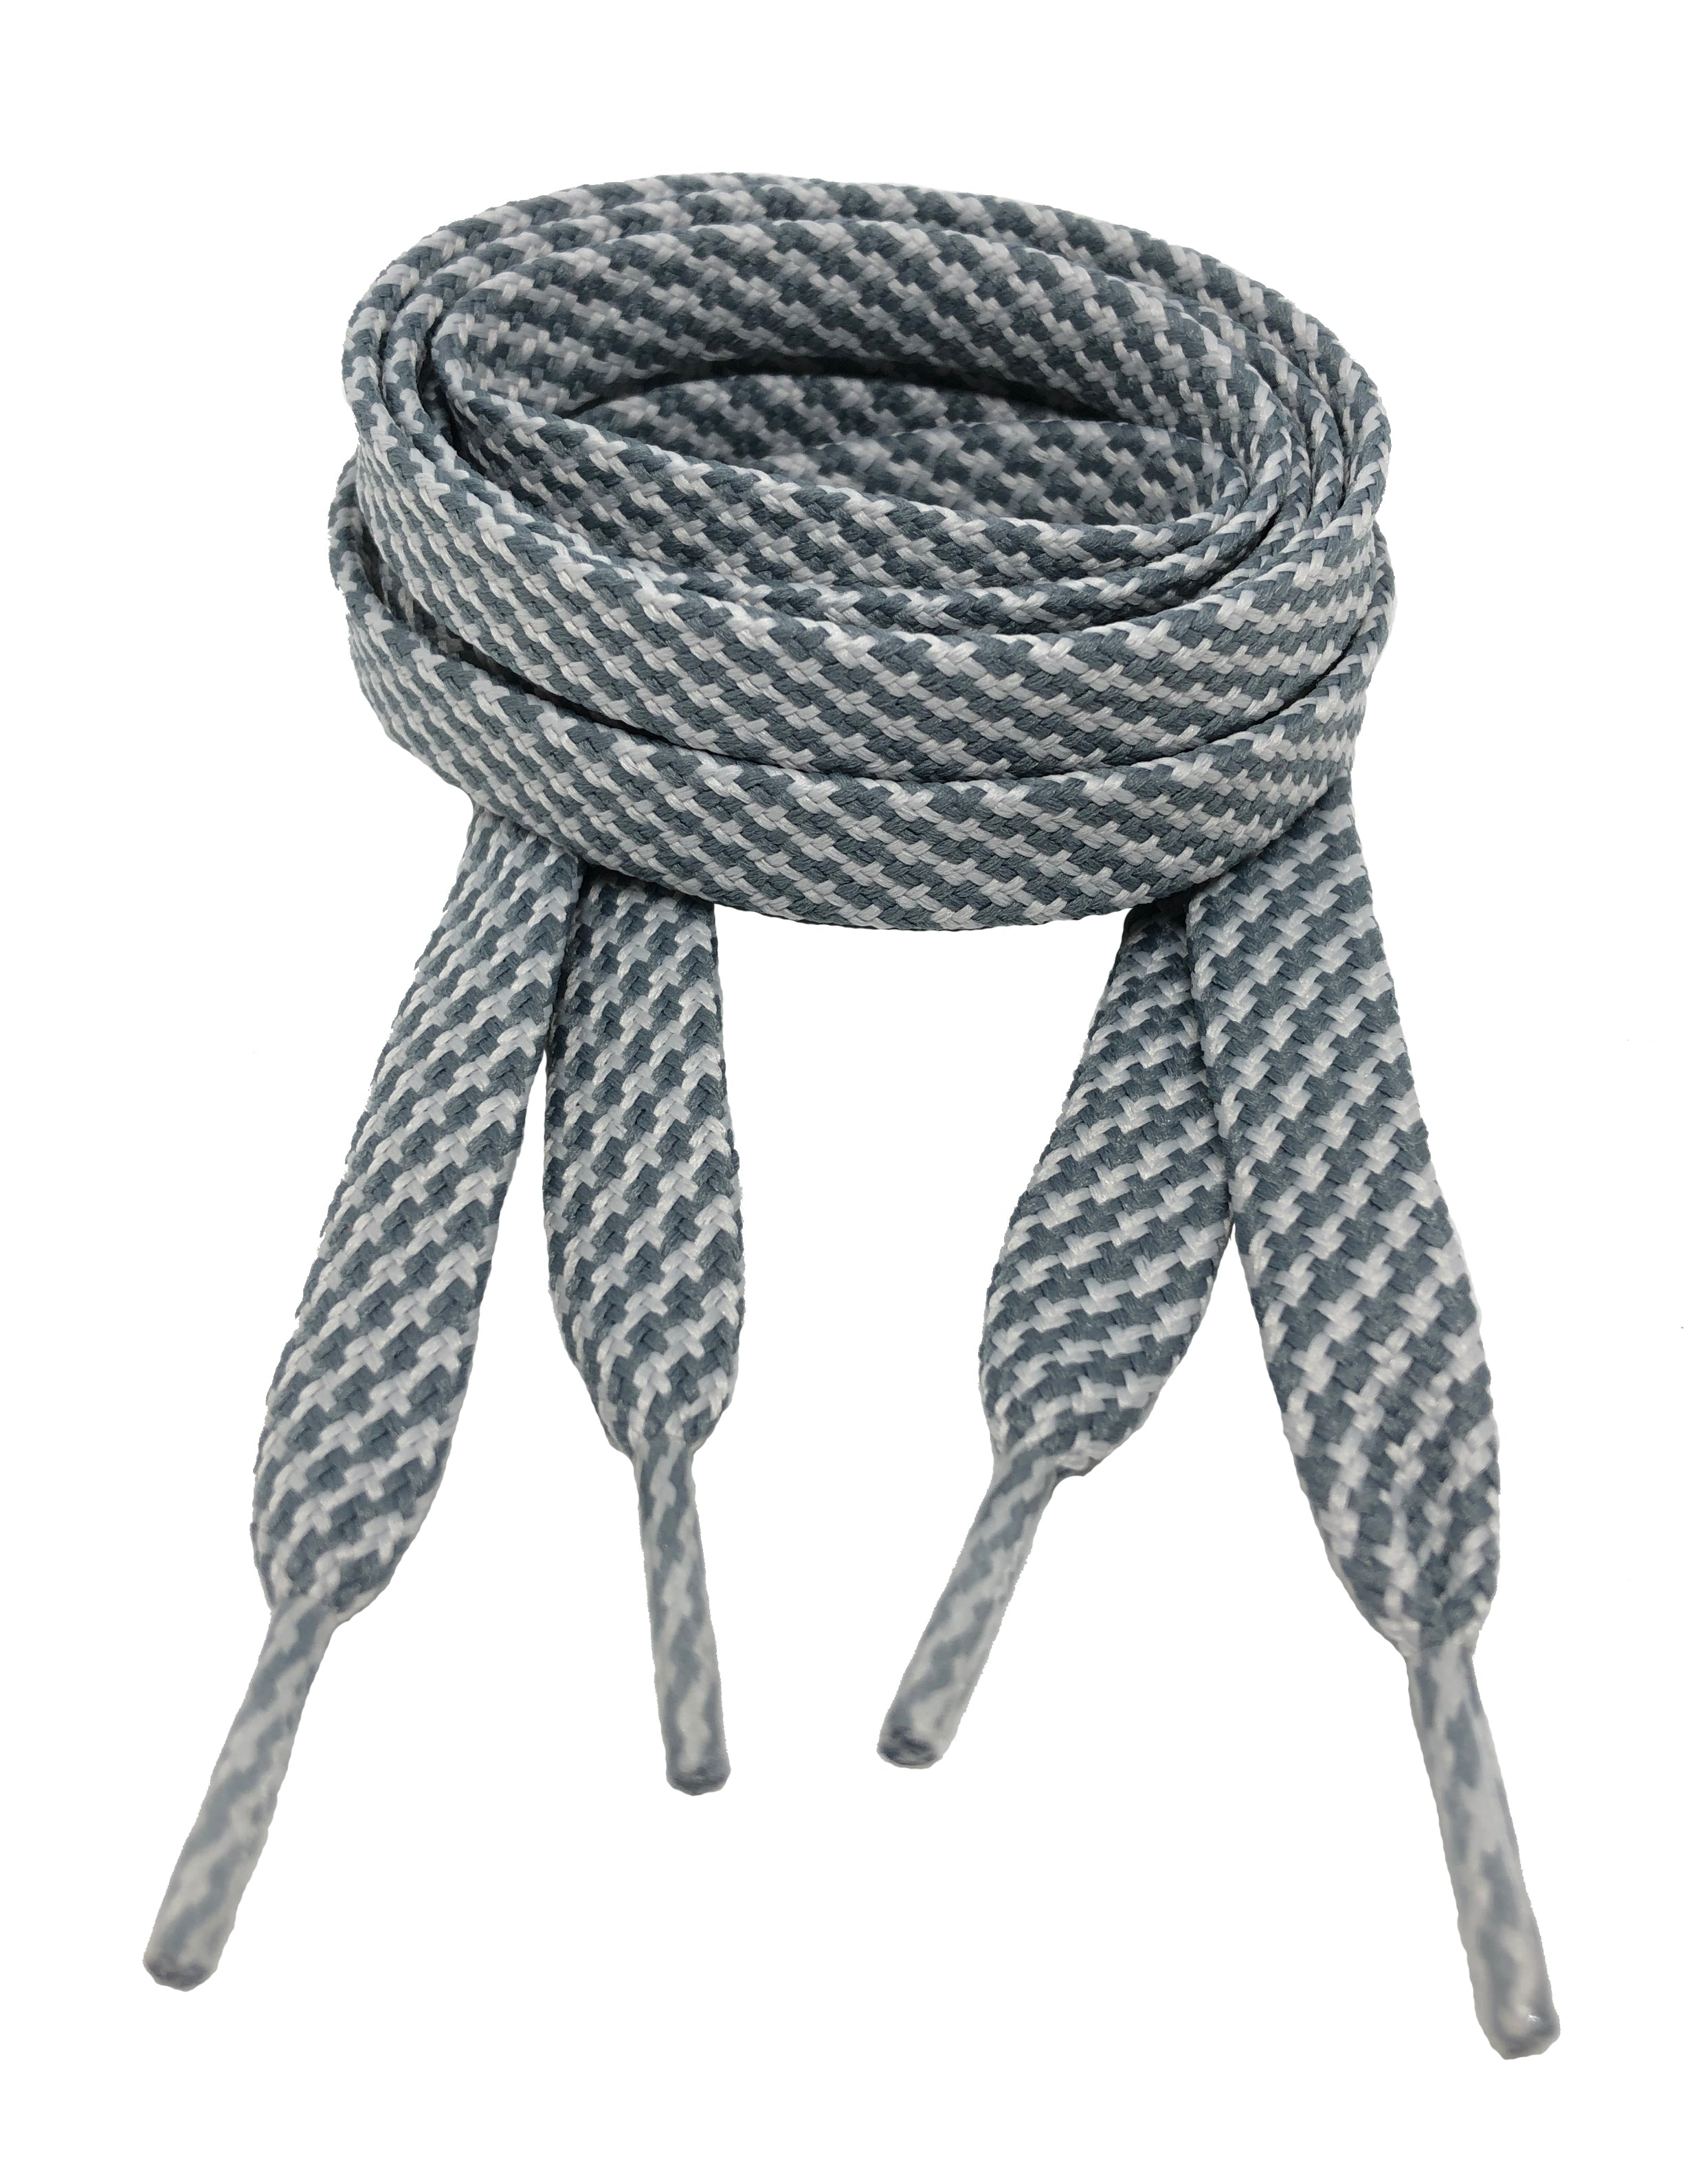 Flat Patterned Strong Shoelaces Dark Grey Light Grey - 12mm wide